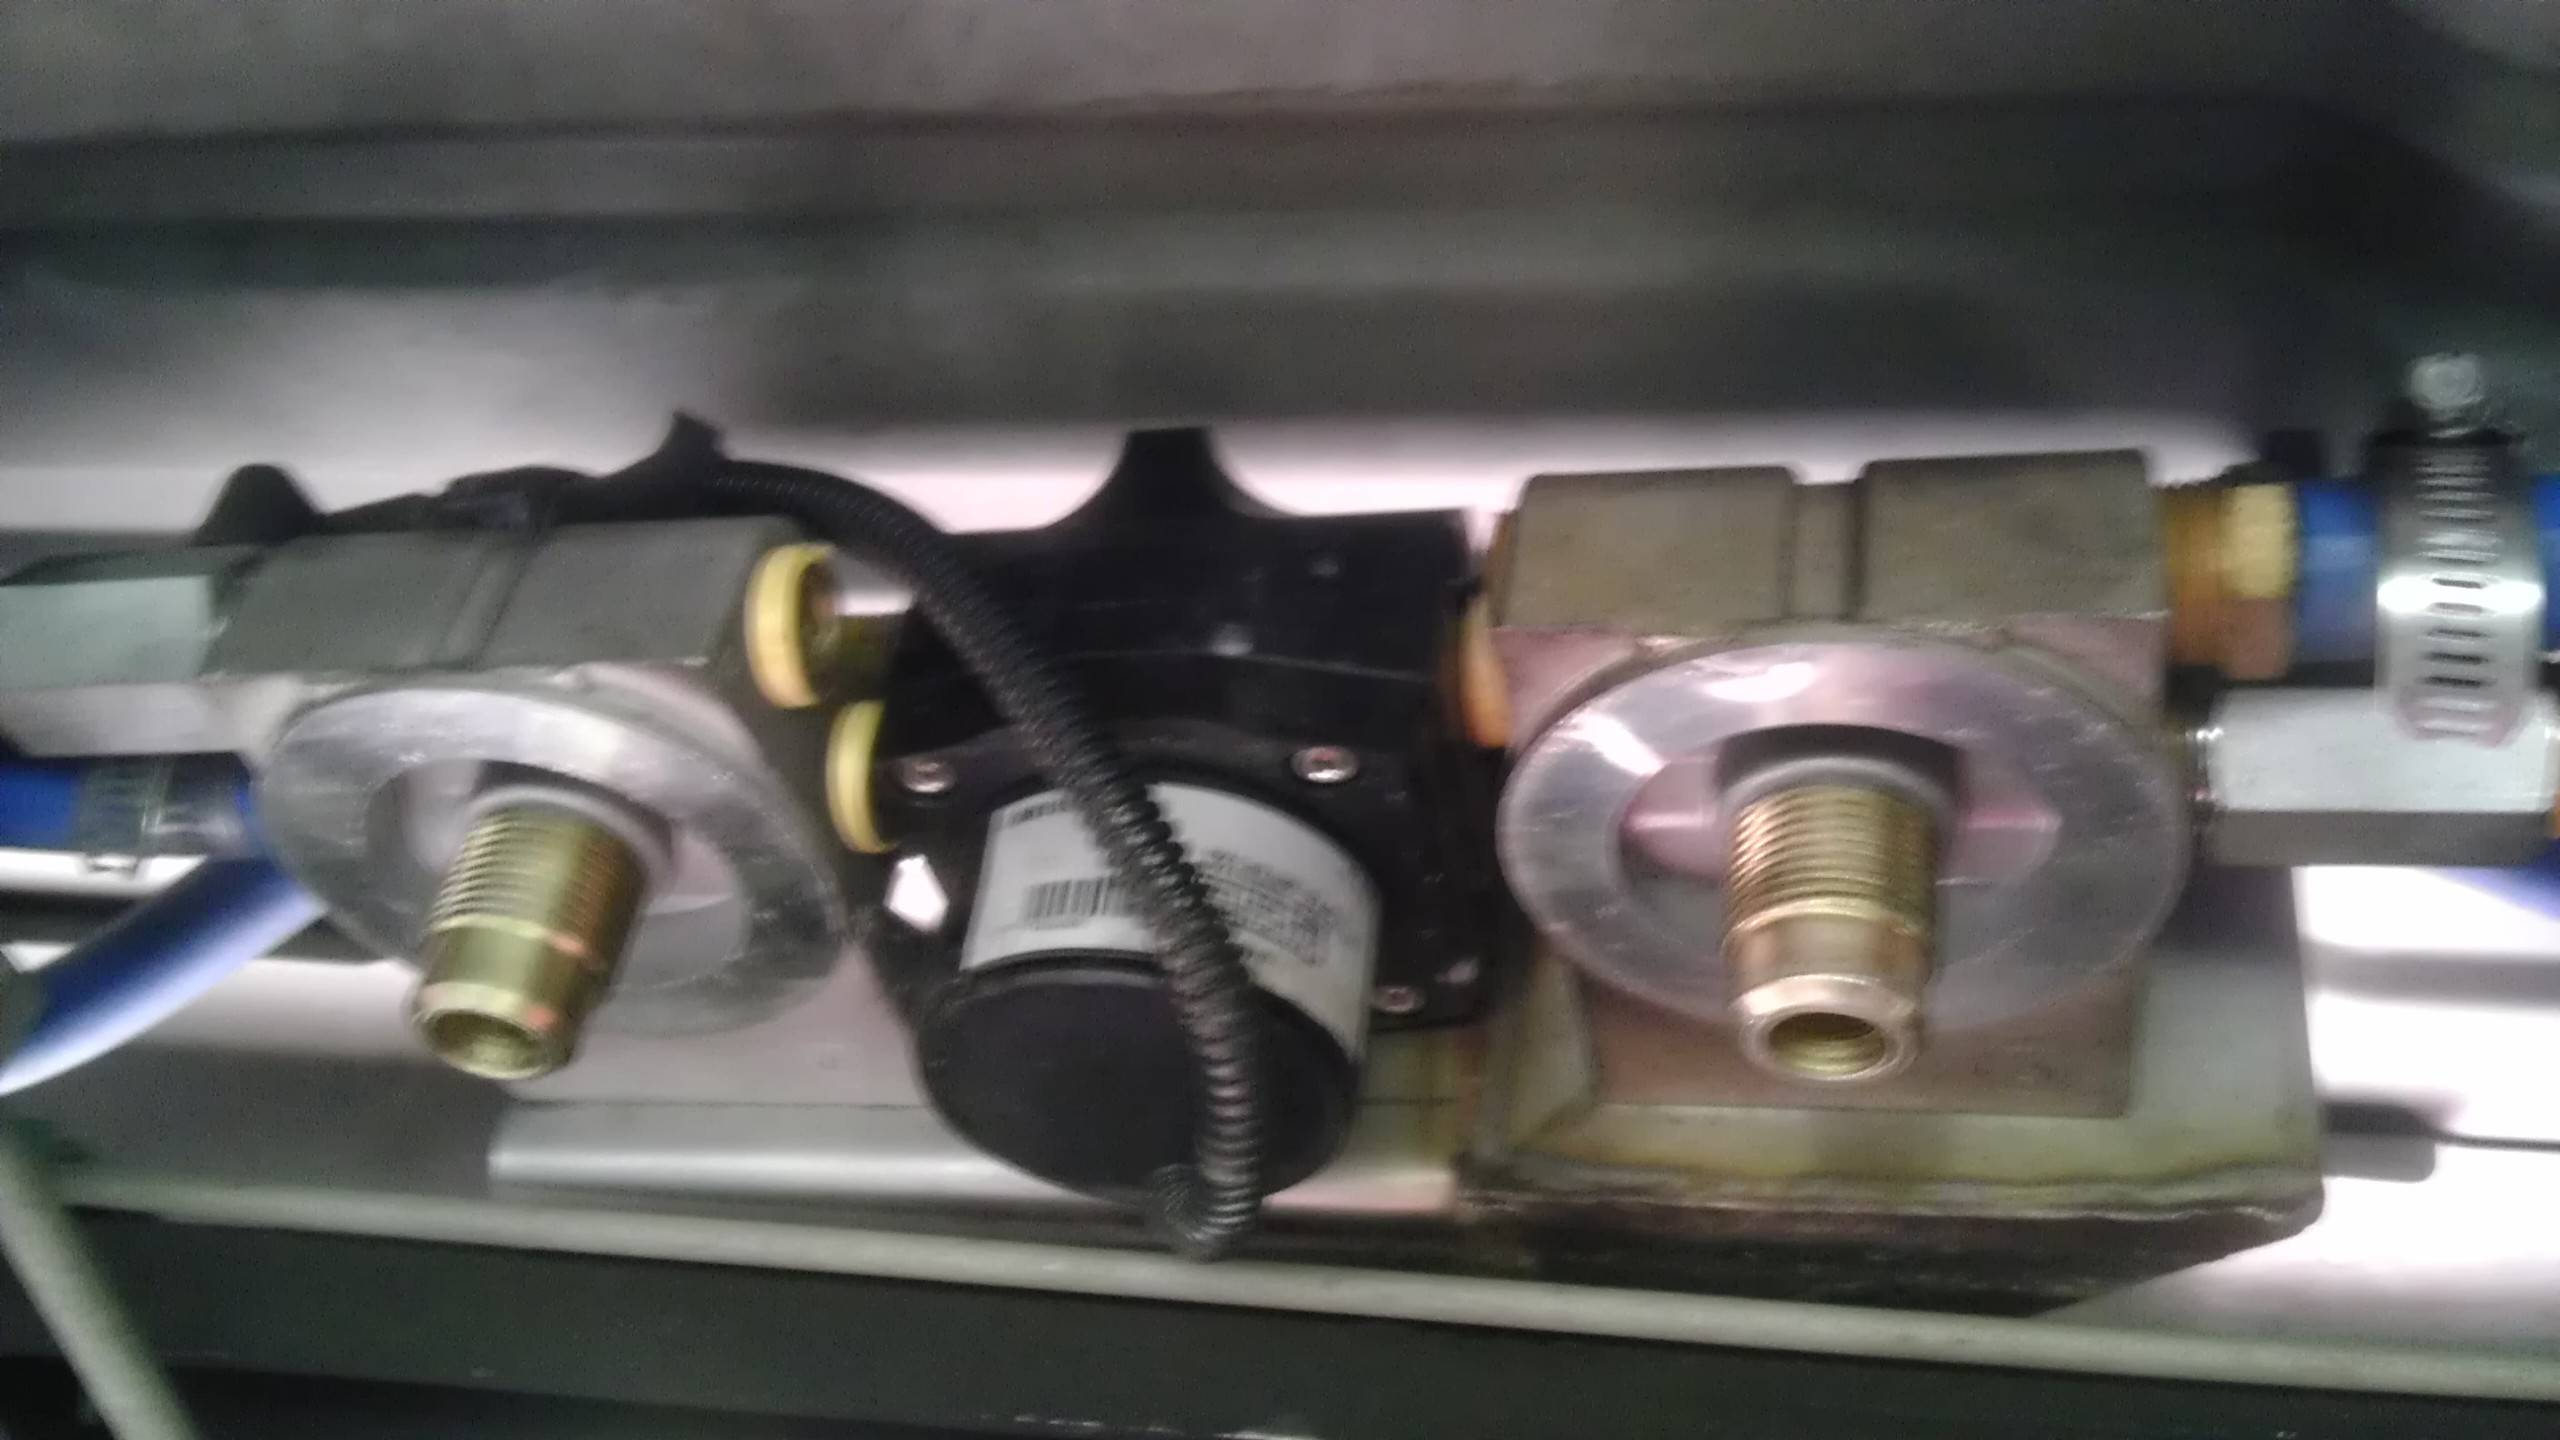 My Lift Pump Kit Chevy And Gmc Duramax Diesel Forum Fuel Filter Heater I Used The Included Relay Fuse Tap Pink Wire In 1st Pic 15a To Switch On Off